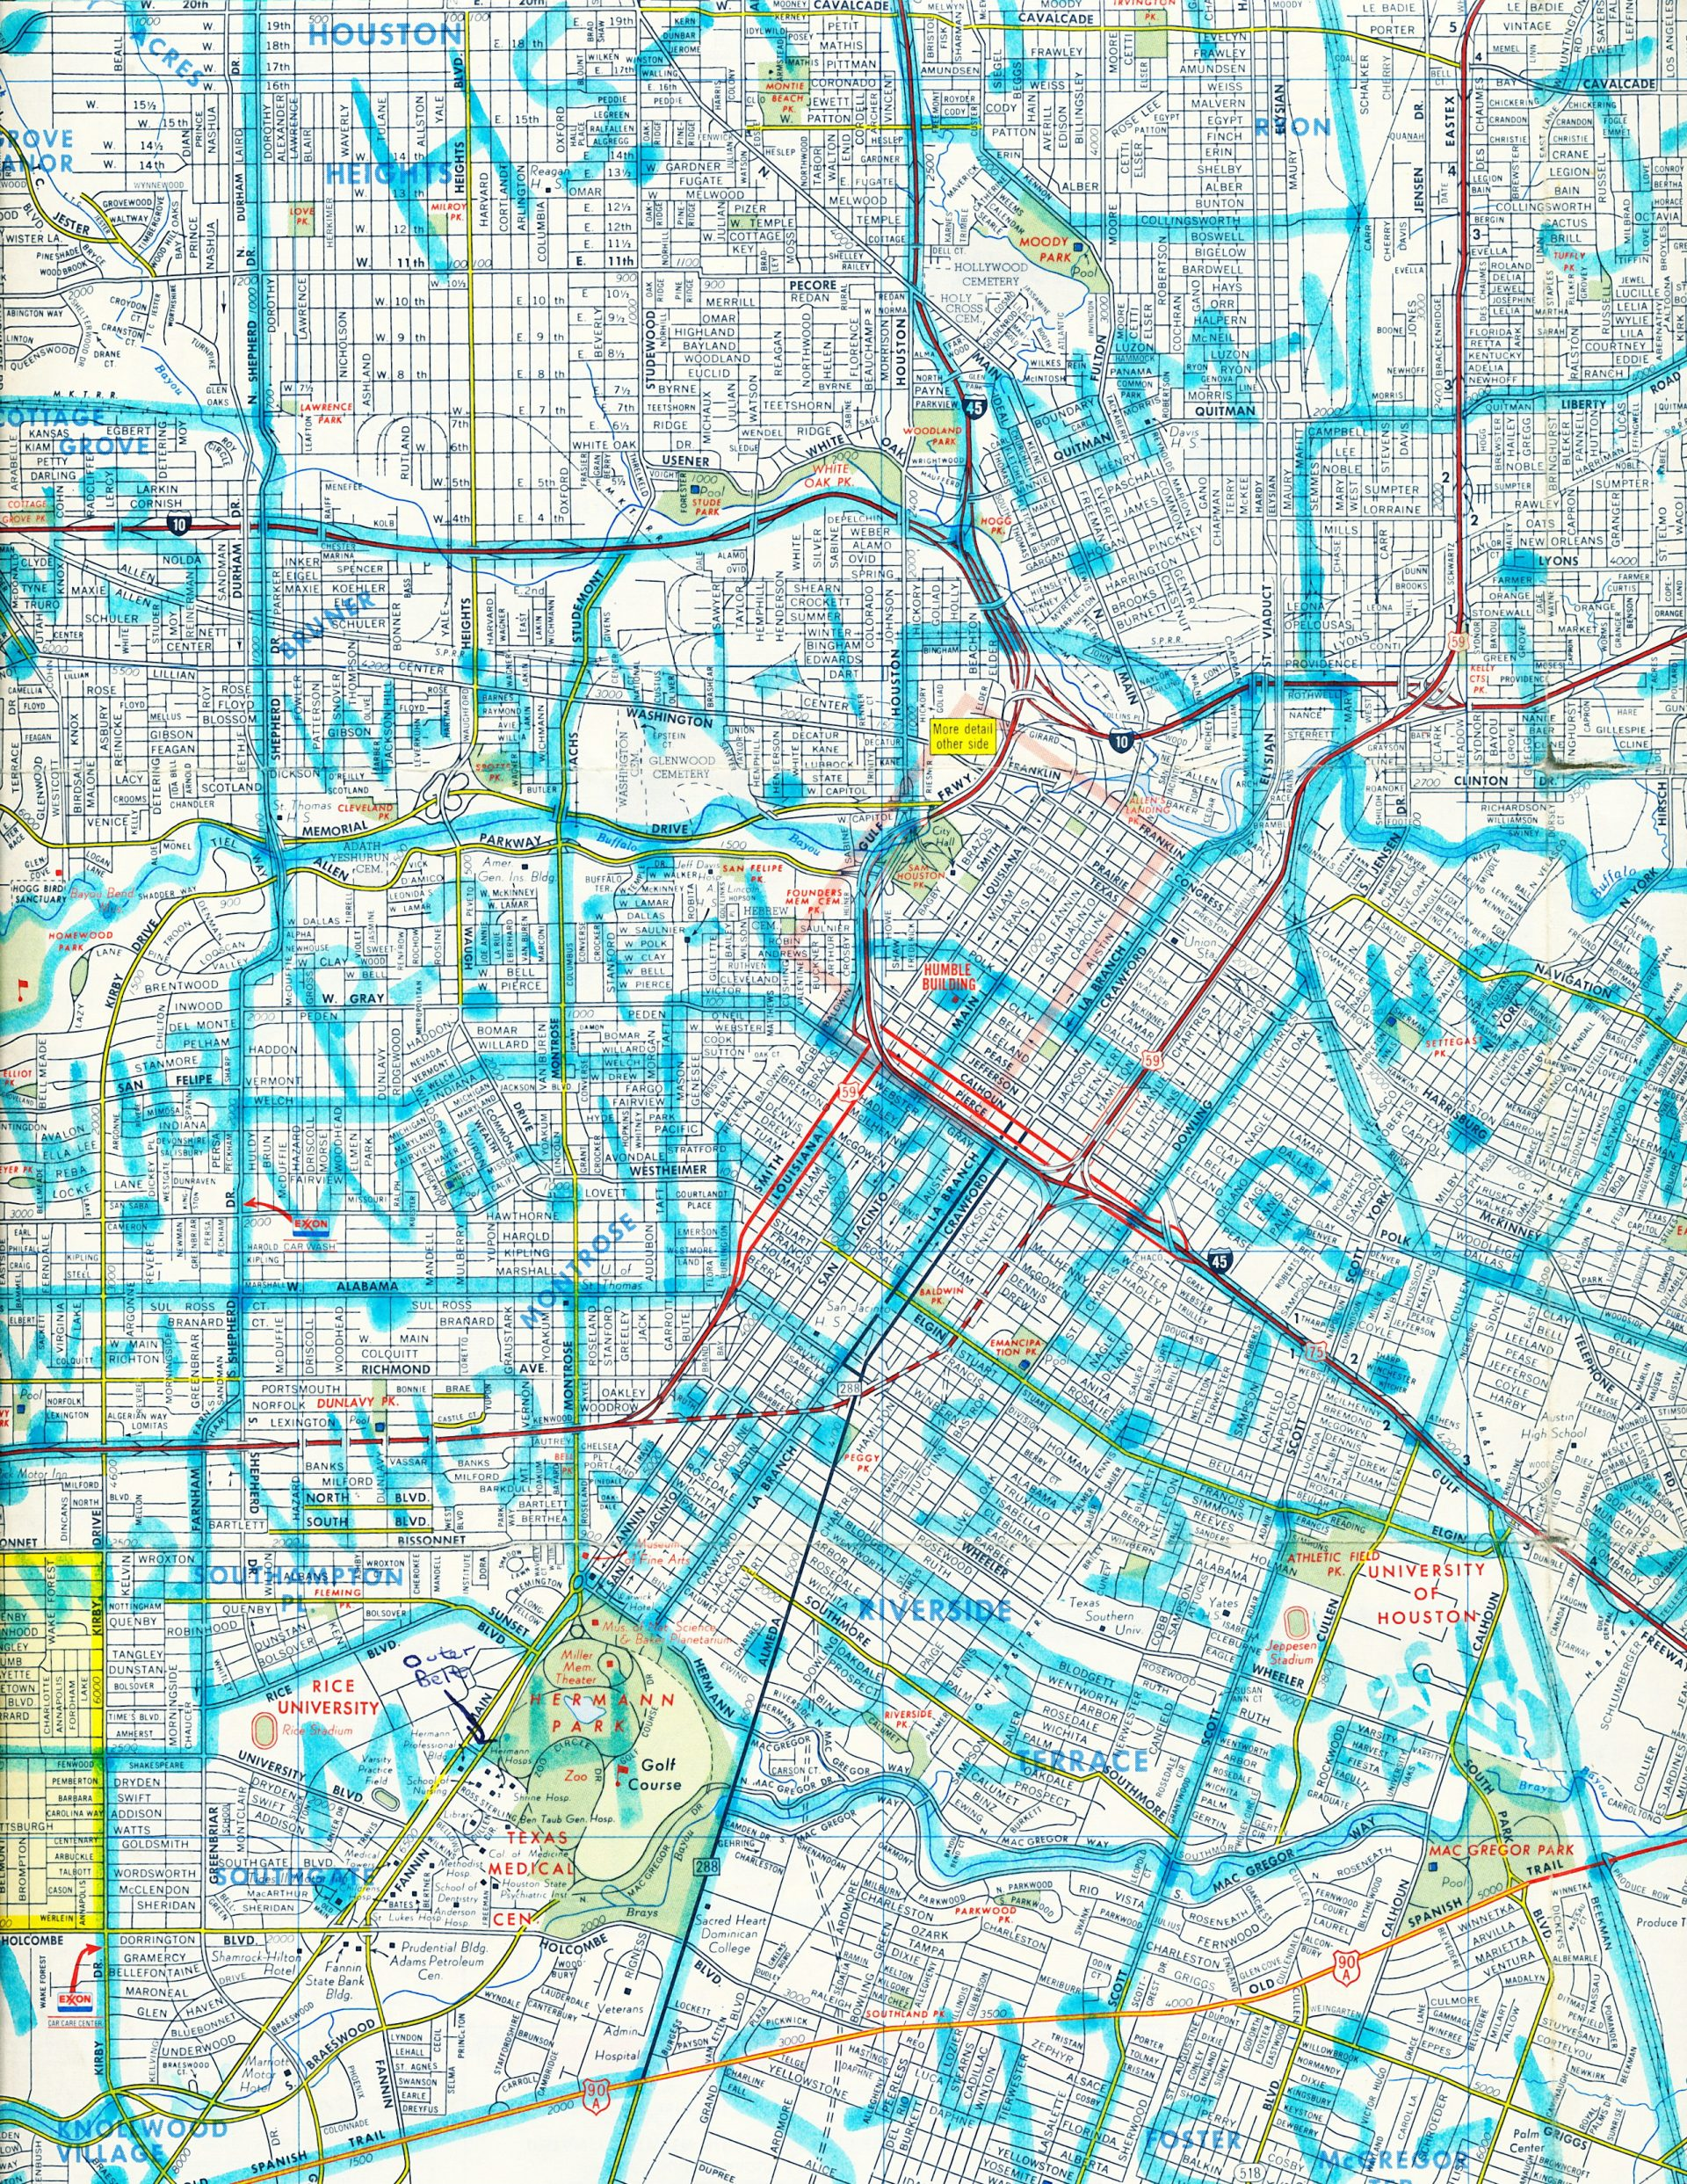 Color map of Houston showing cab zones